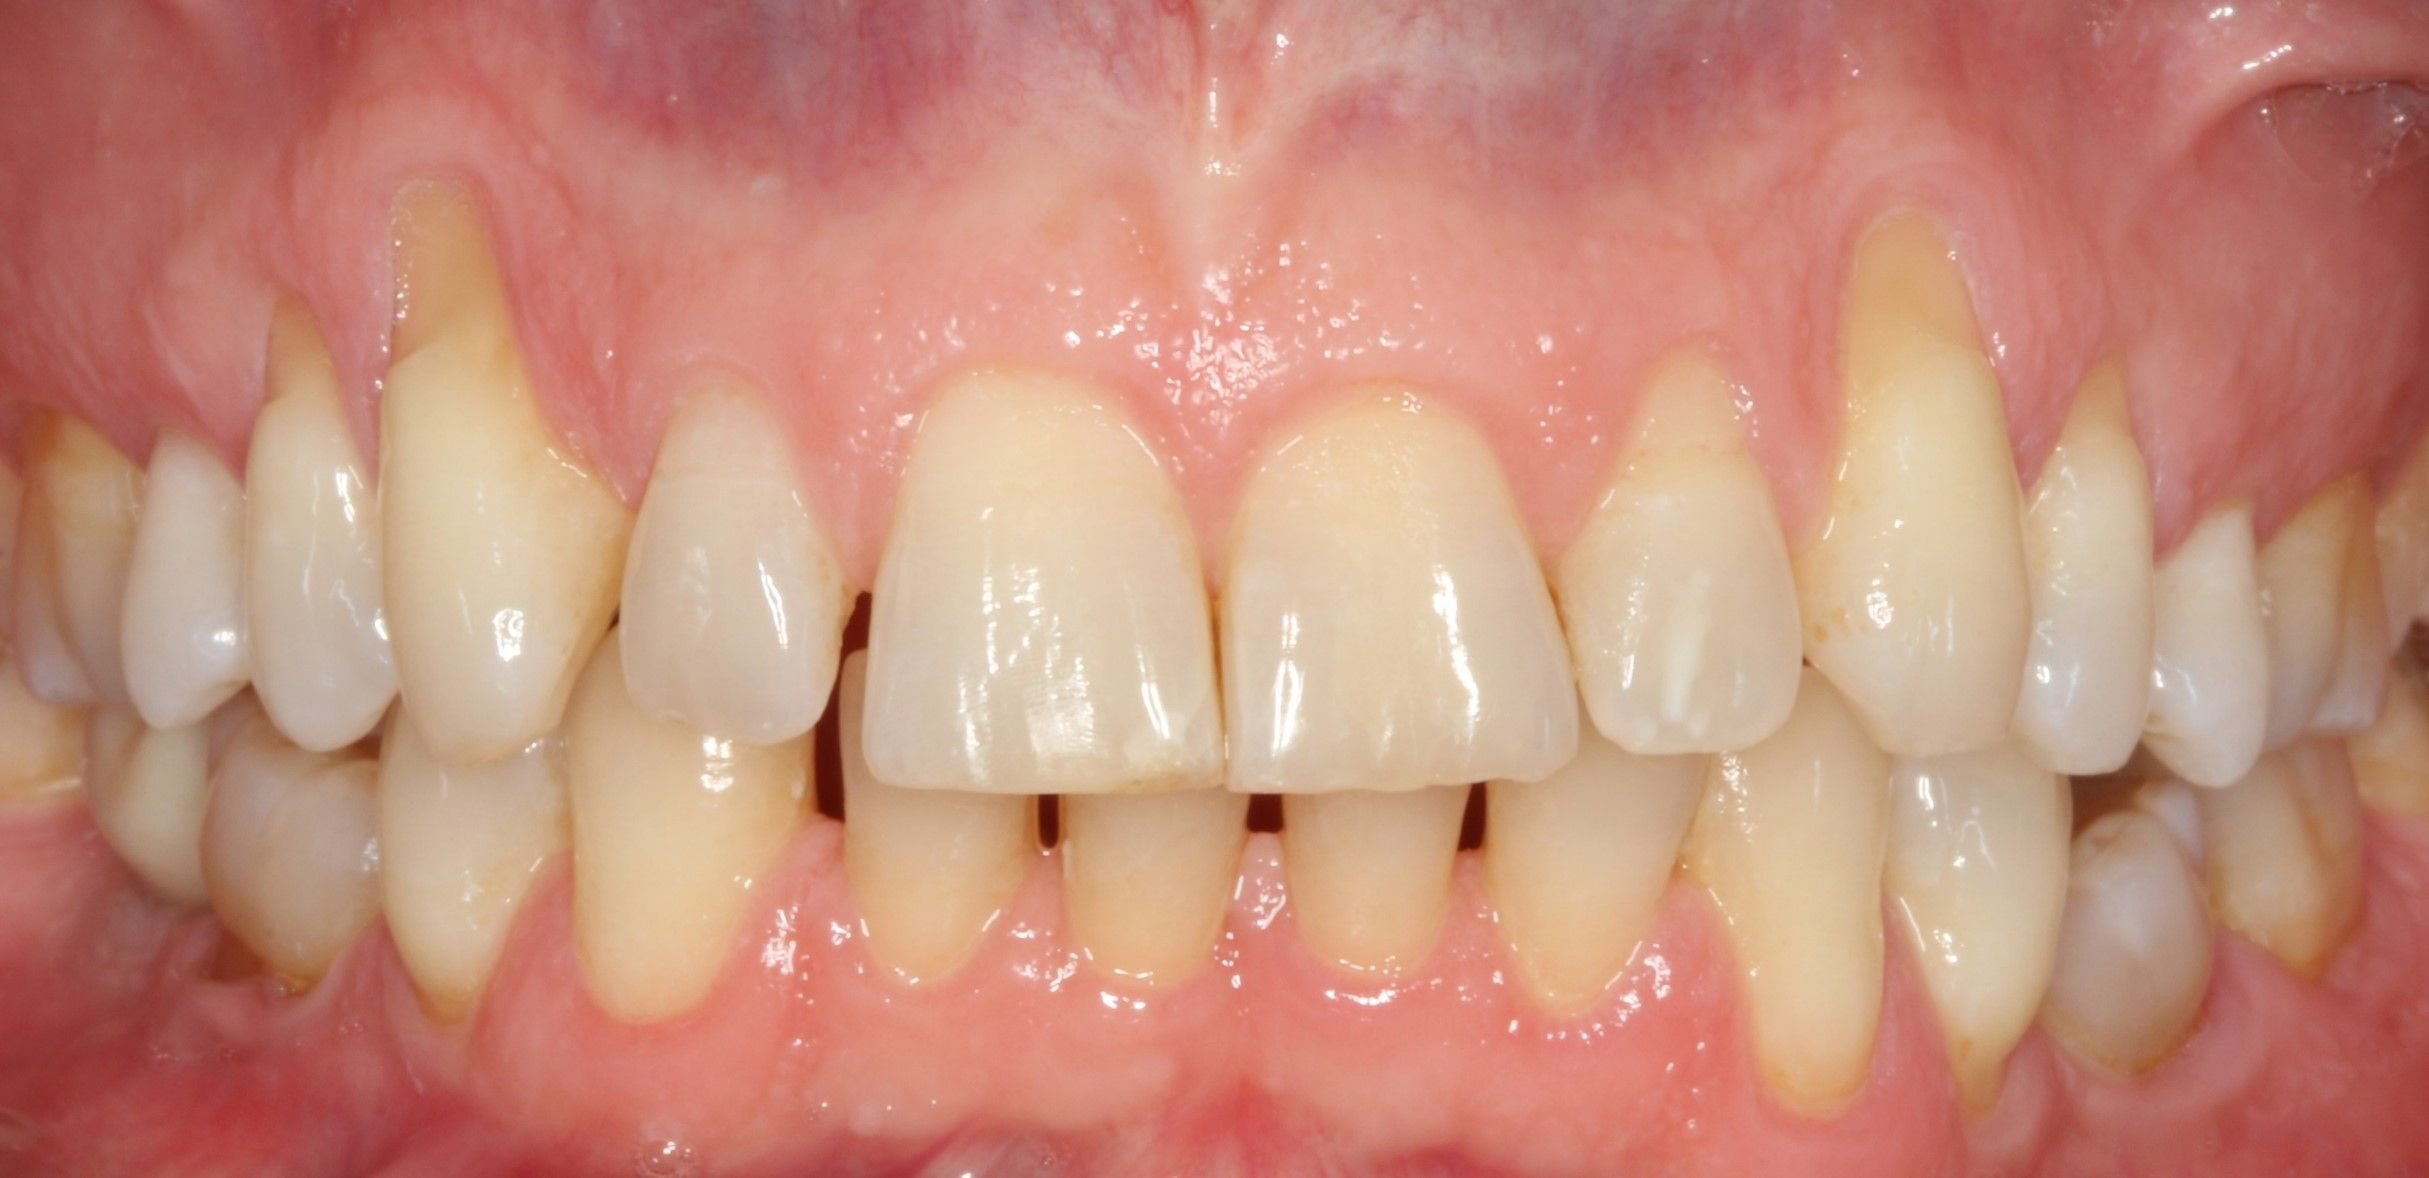 Before treatment of receding gums using the Pinhole technique